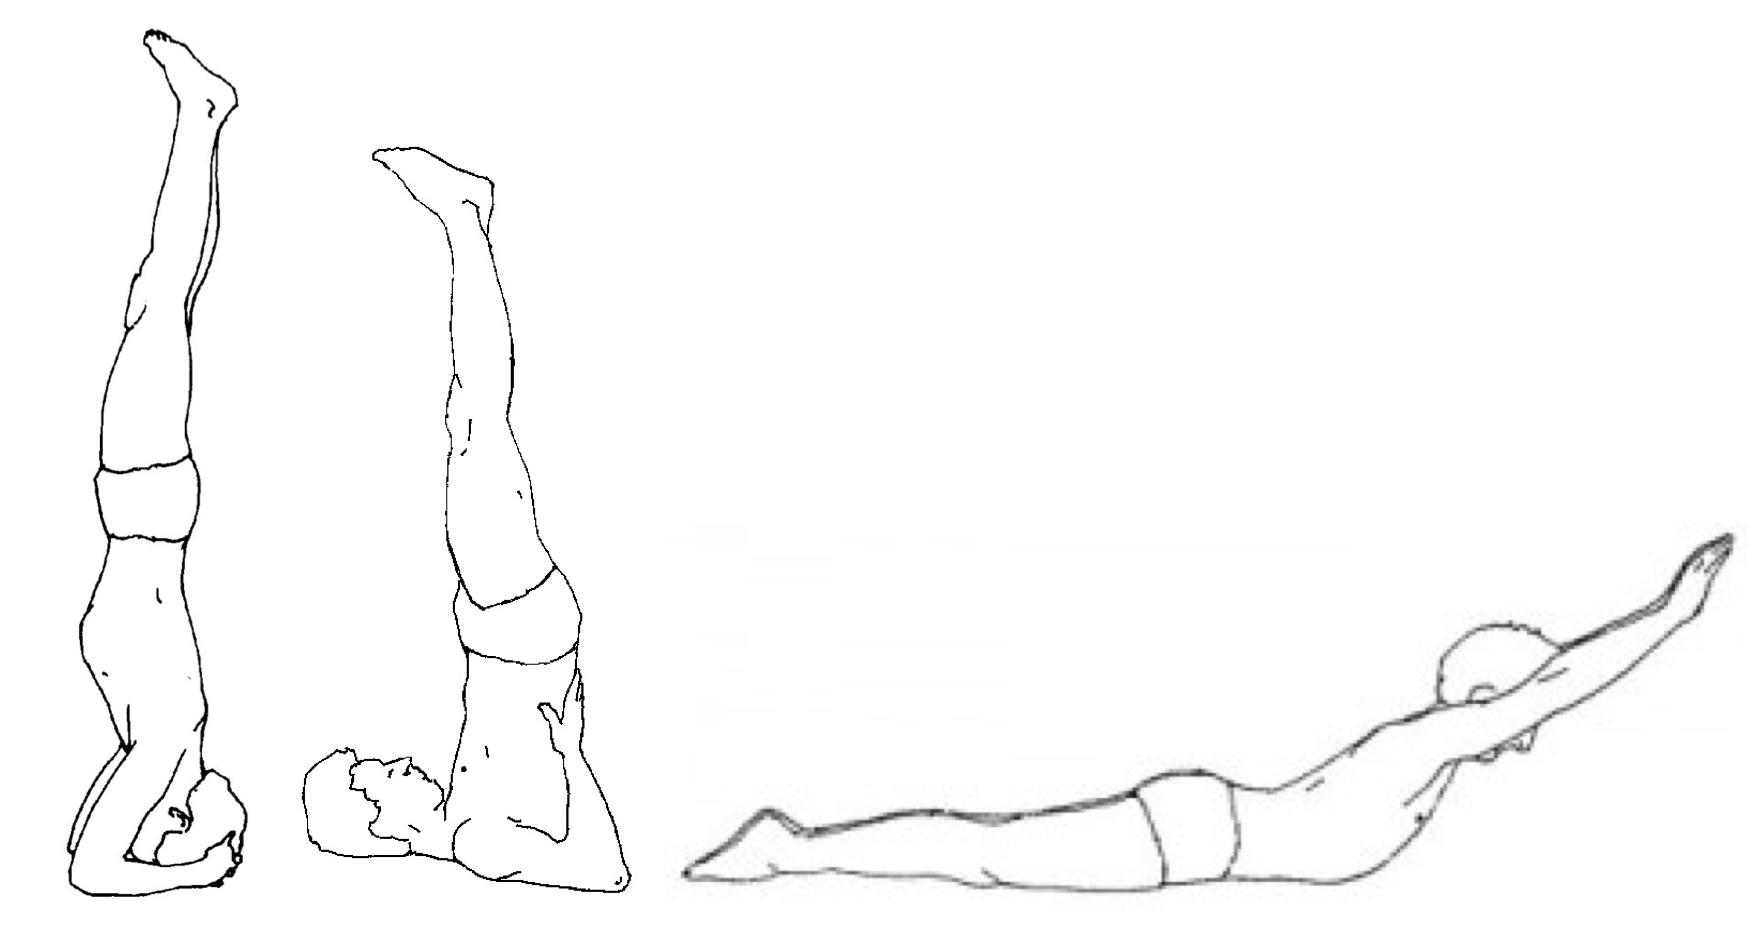 Headstand Counterpose